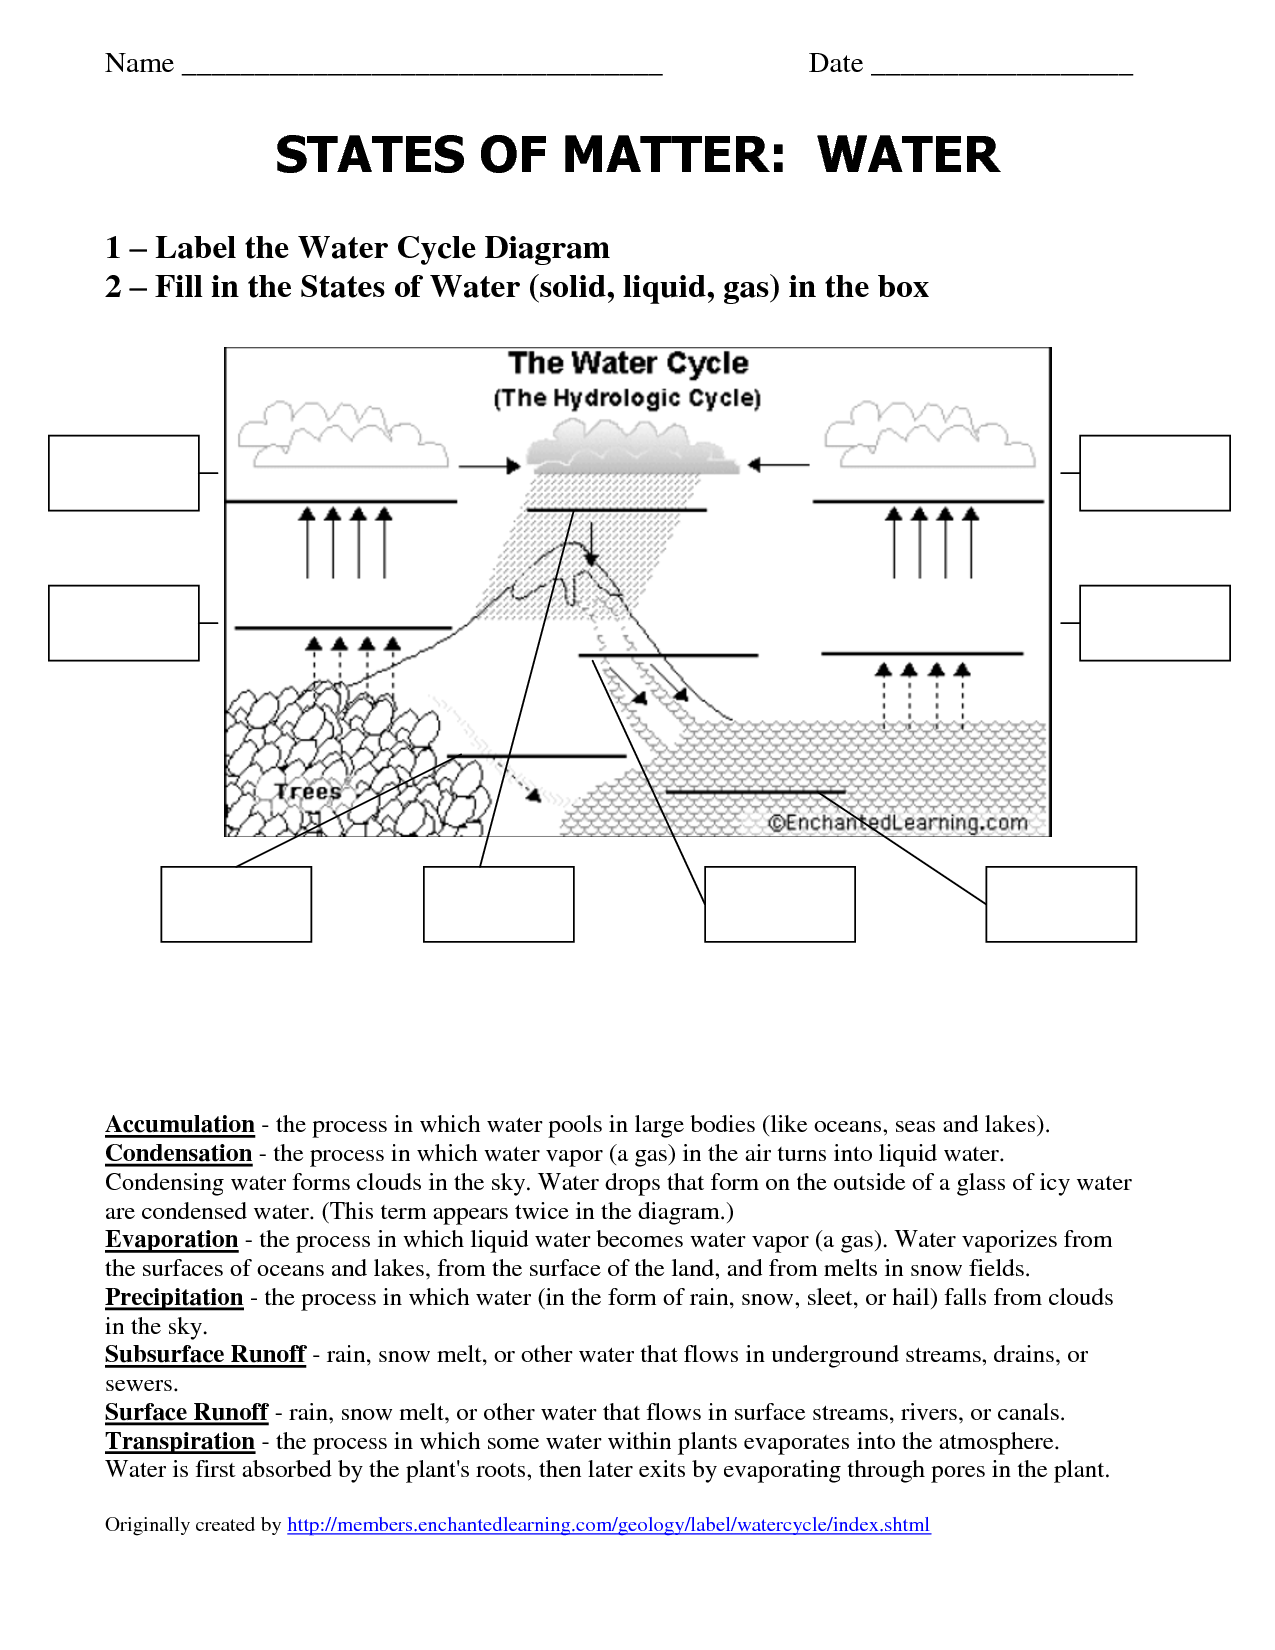 blank rock cycle diagram worksheet 2003 chevy avalanche bose stereo wiring 15 best images of water fill in